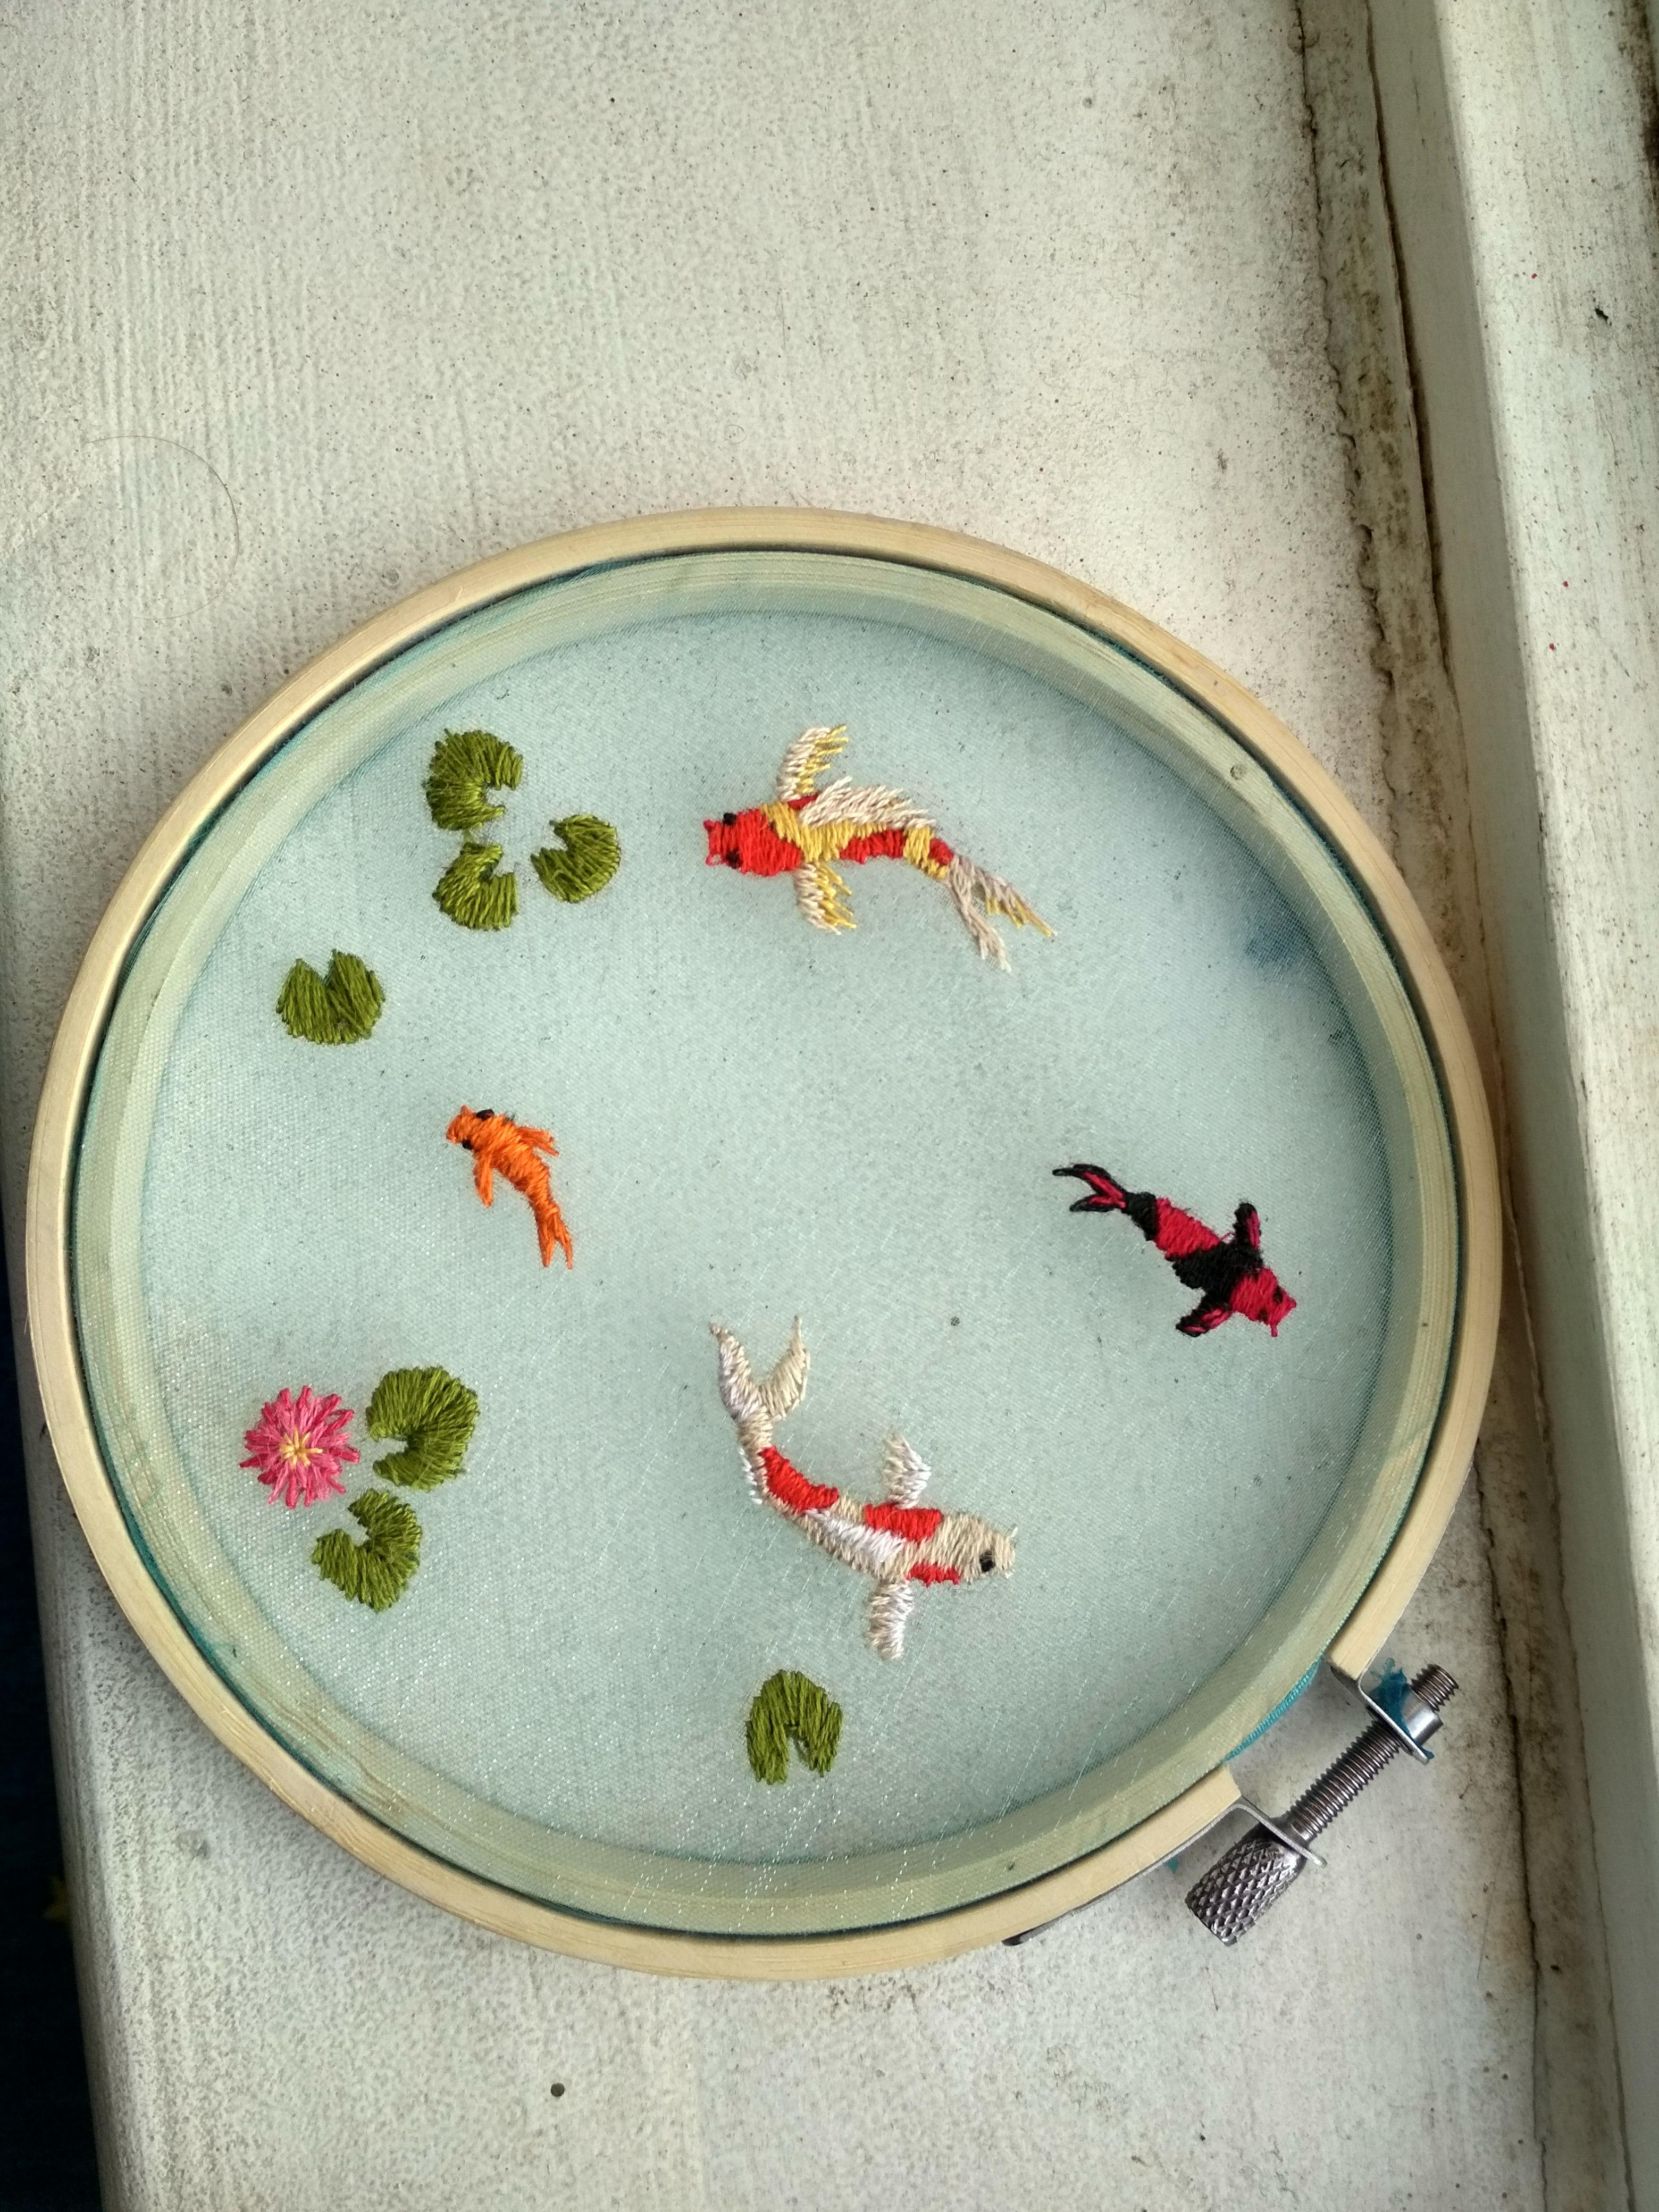 Koi Fish Embroidery : embroidery, Tried, Doing, Organza, Embroidery